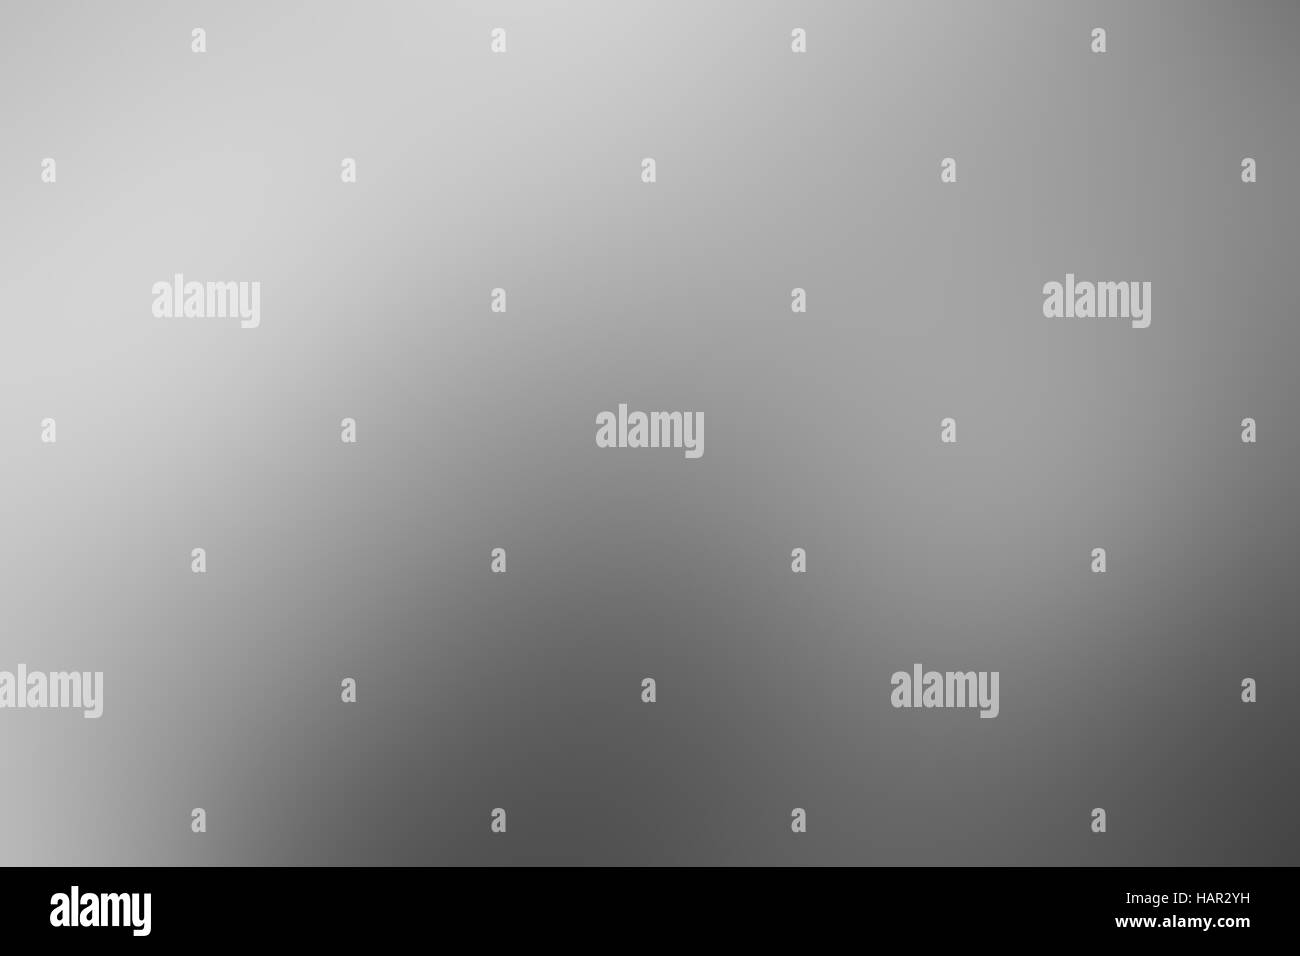 Abstract background. Smooth gradient background of black and white - Stock Image